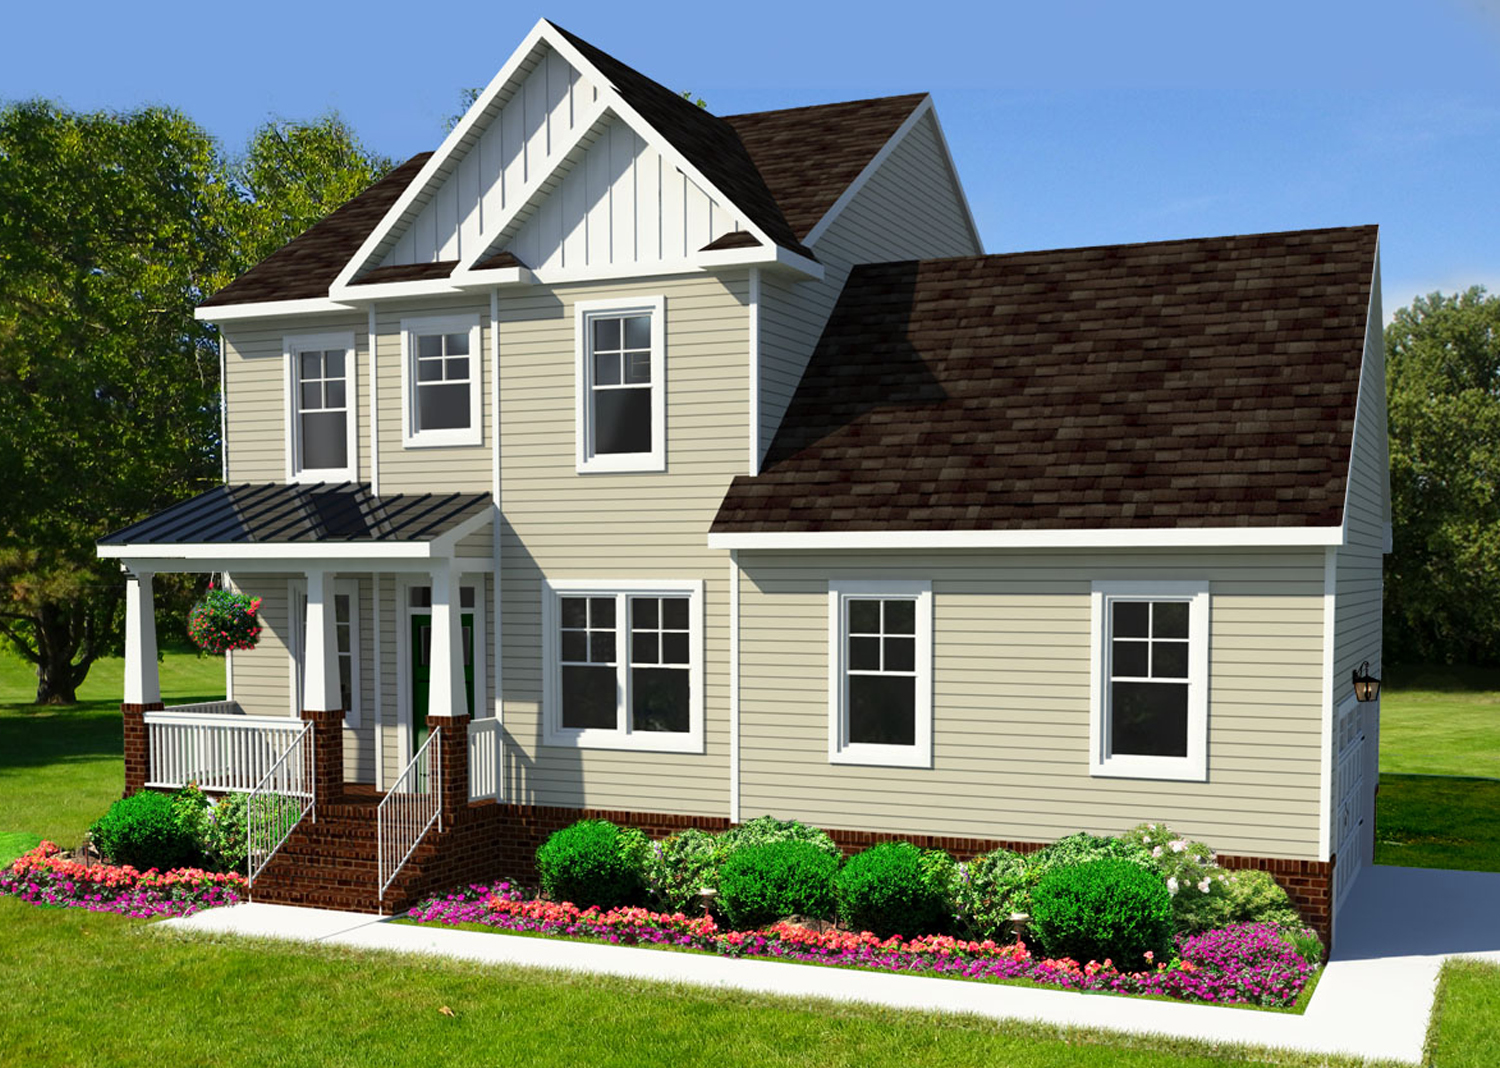 Willoughby New Construction Homes for Sale Suffolk VA AB Homes